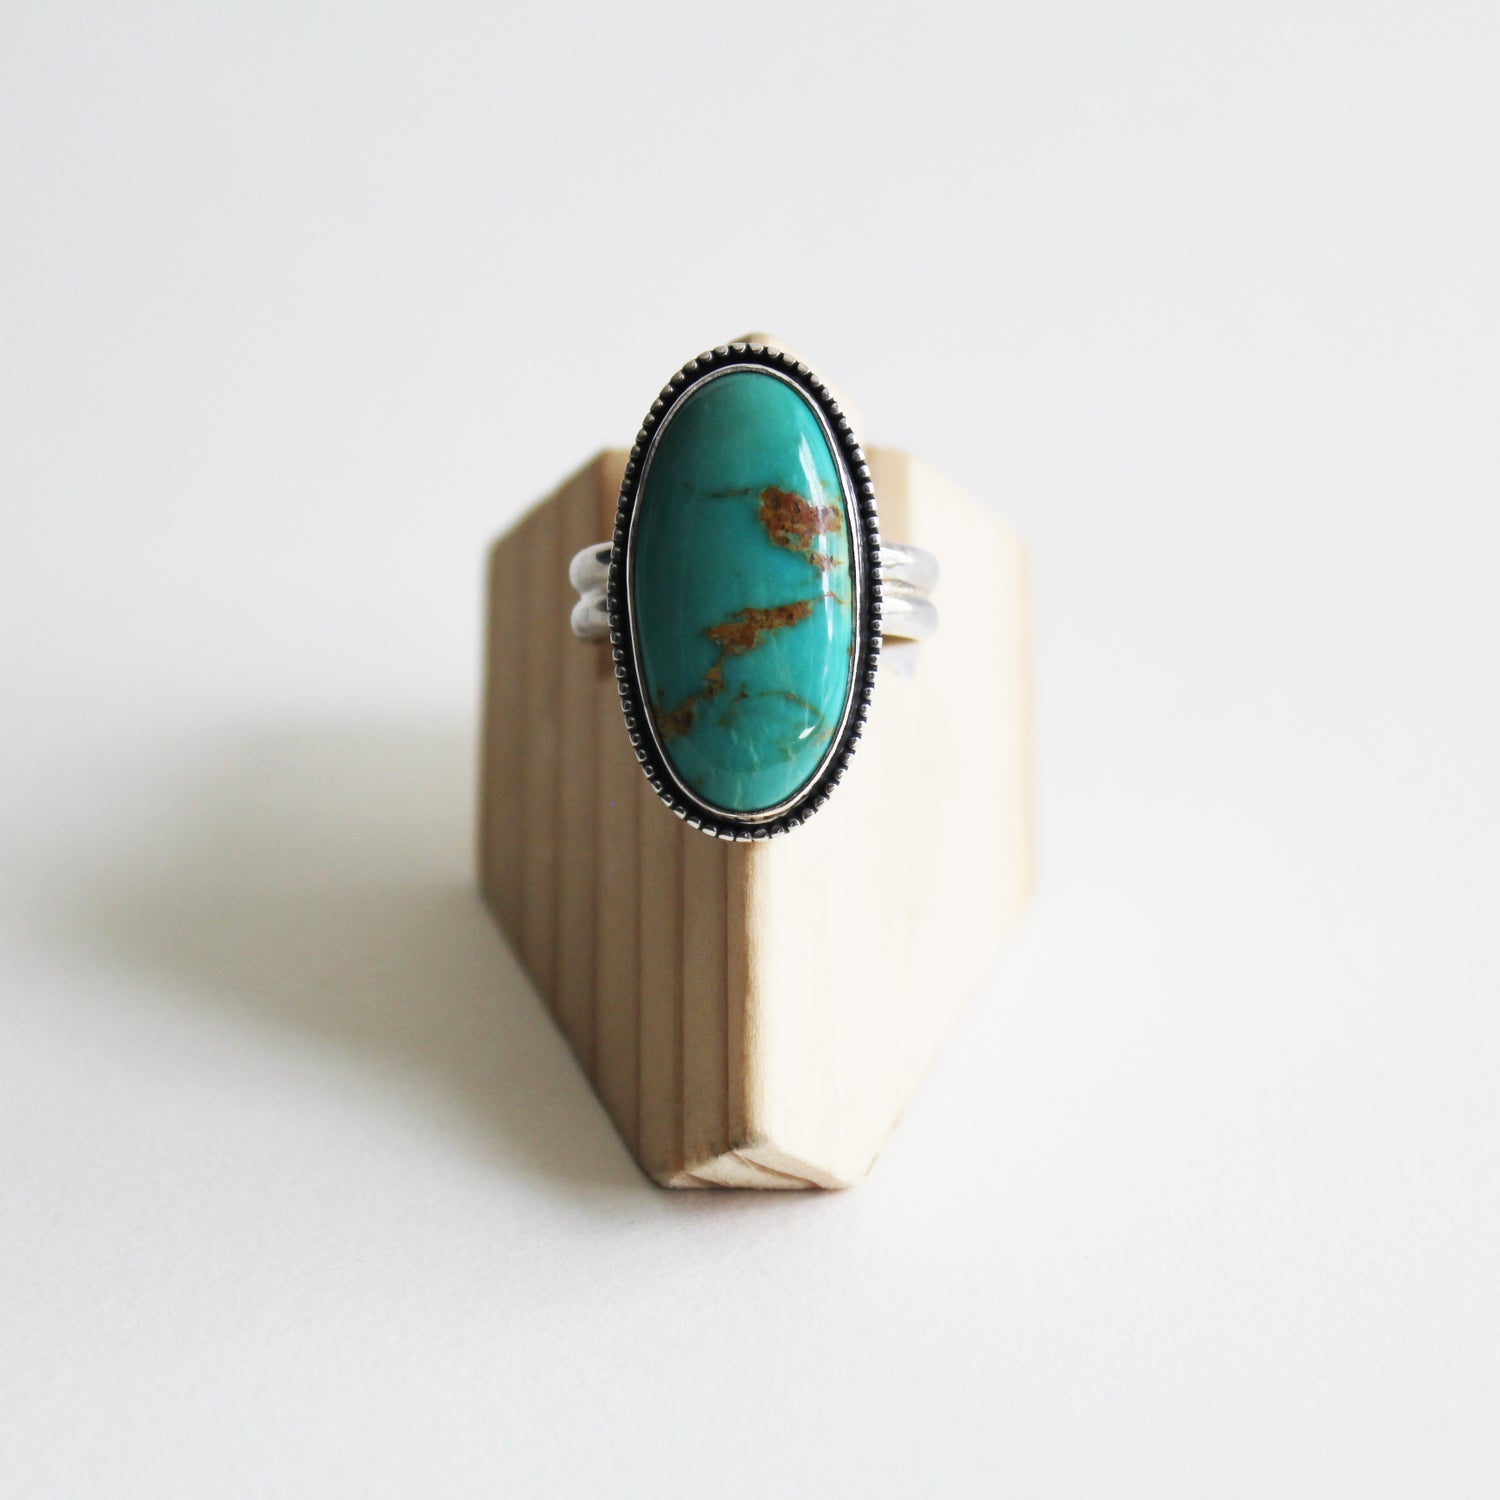 Image of Turquoise Sterling Silver Ring - Size 8.5